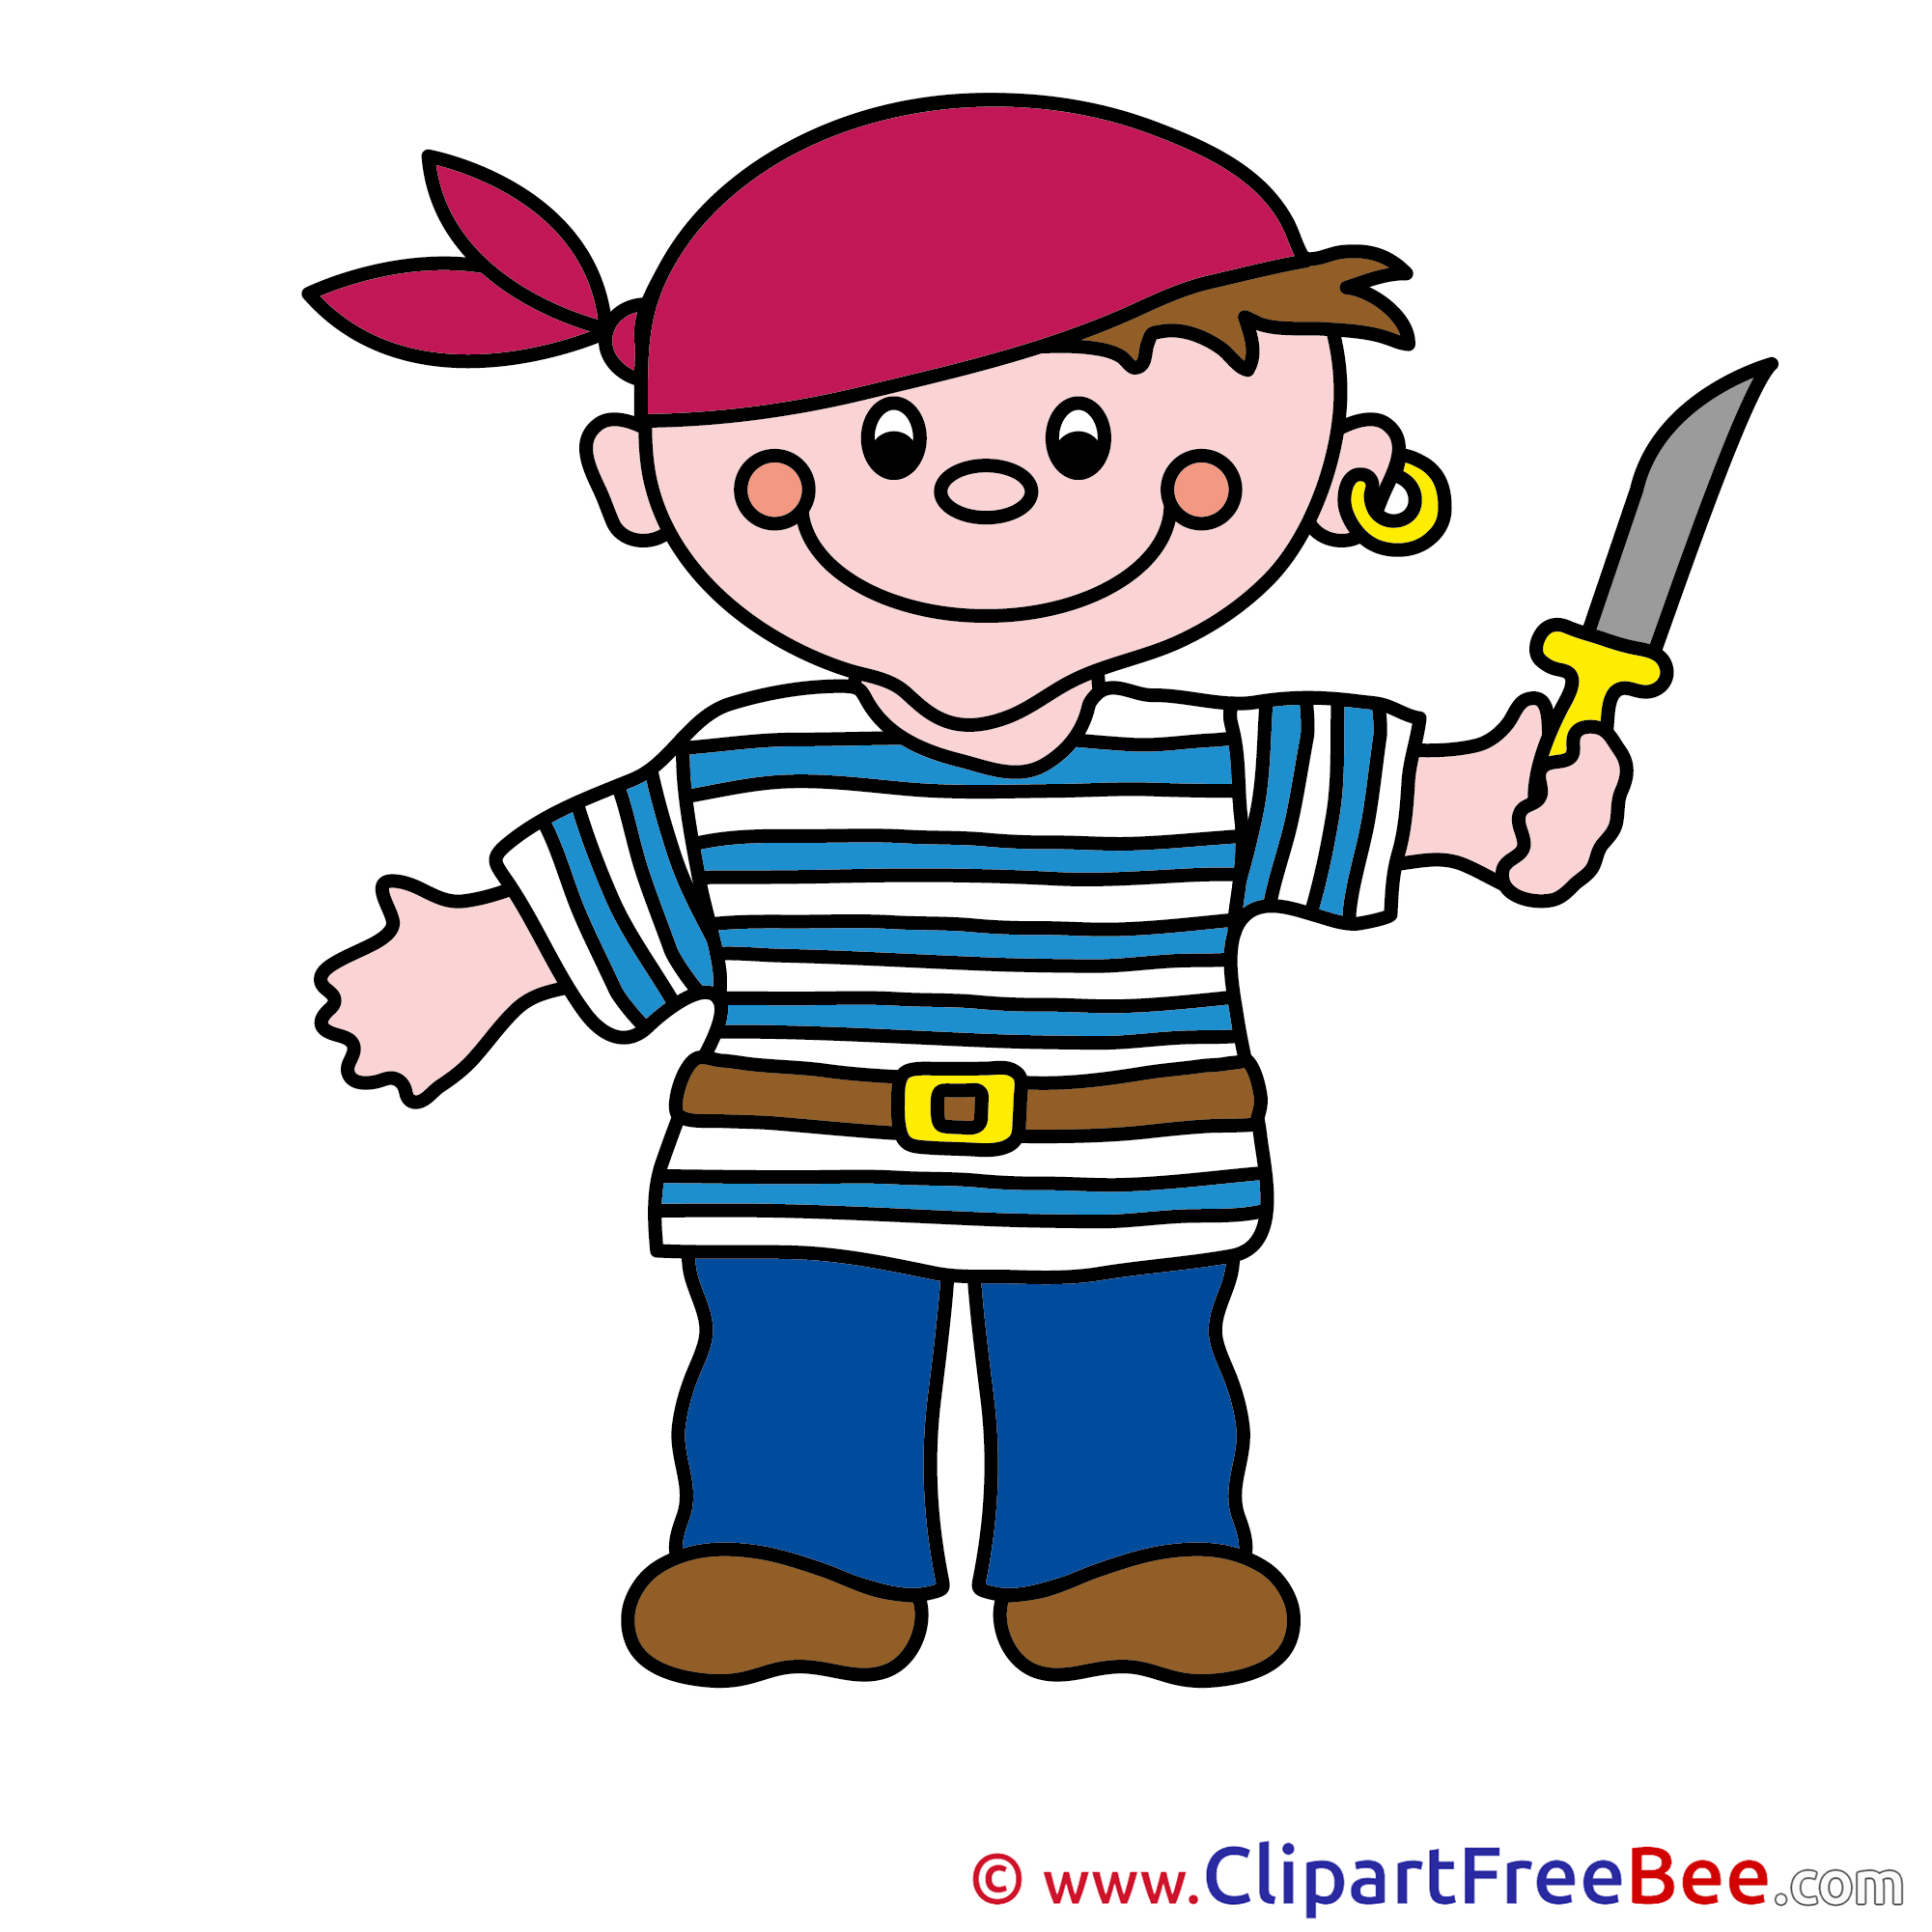 2001x2001 Fairy Clip Art Images In High Resolution For Free